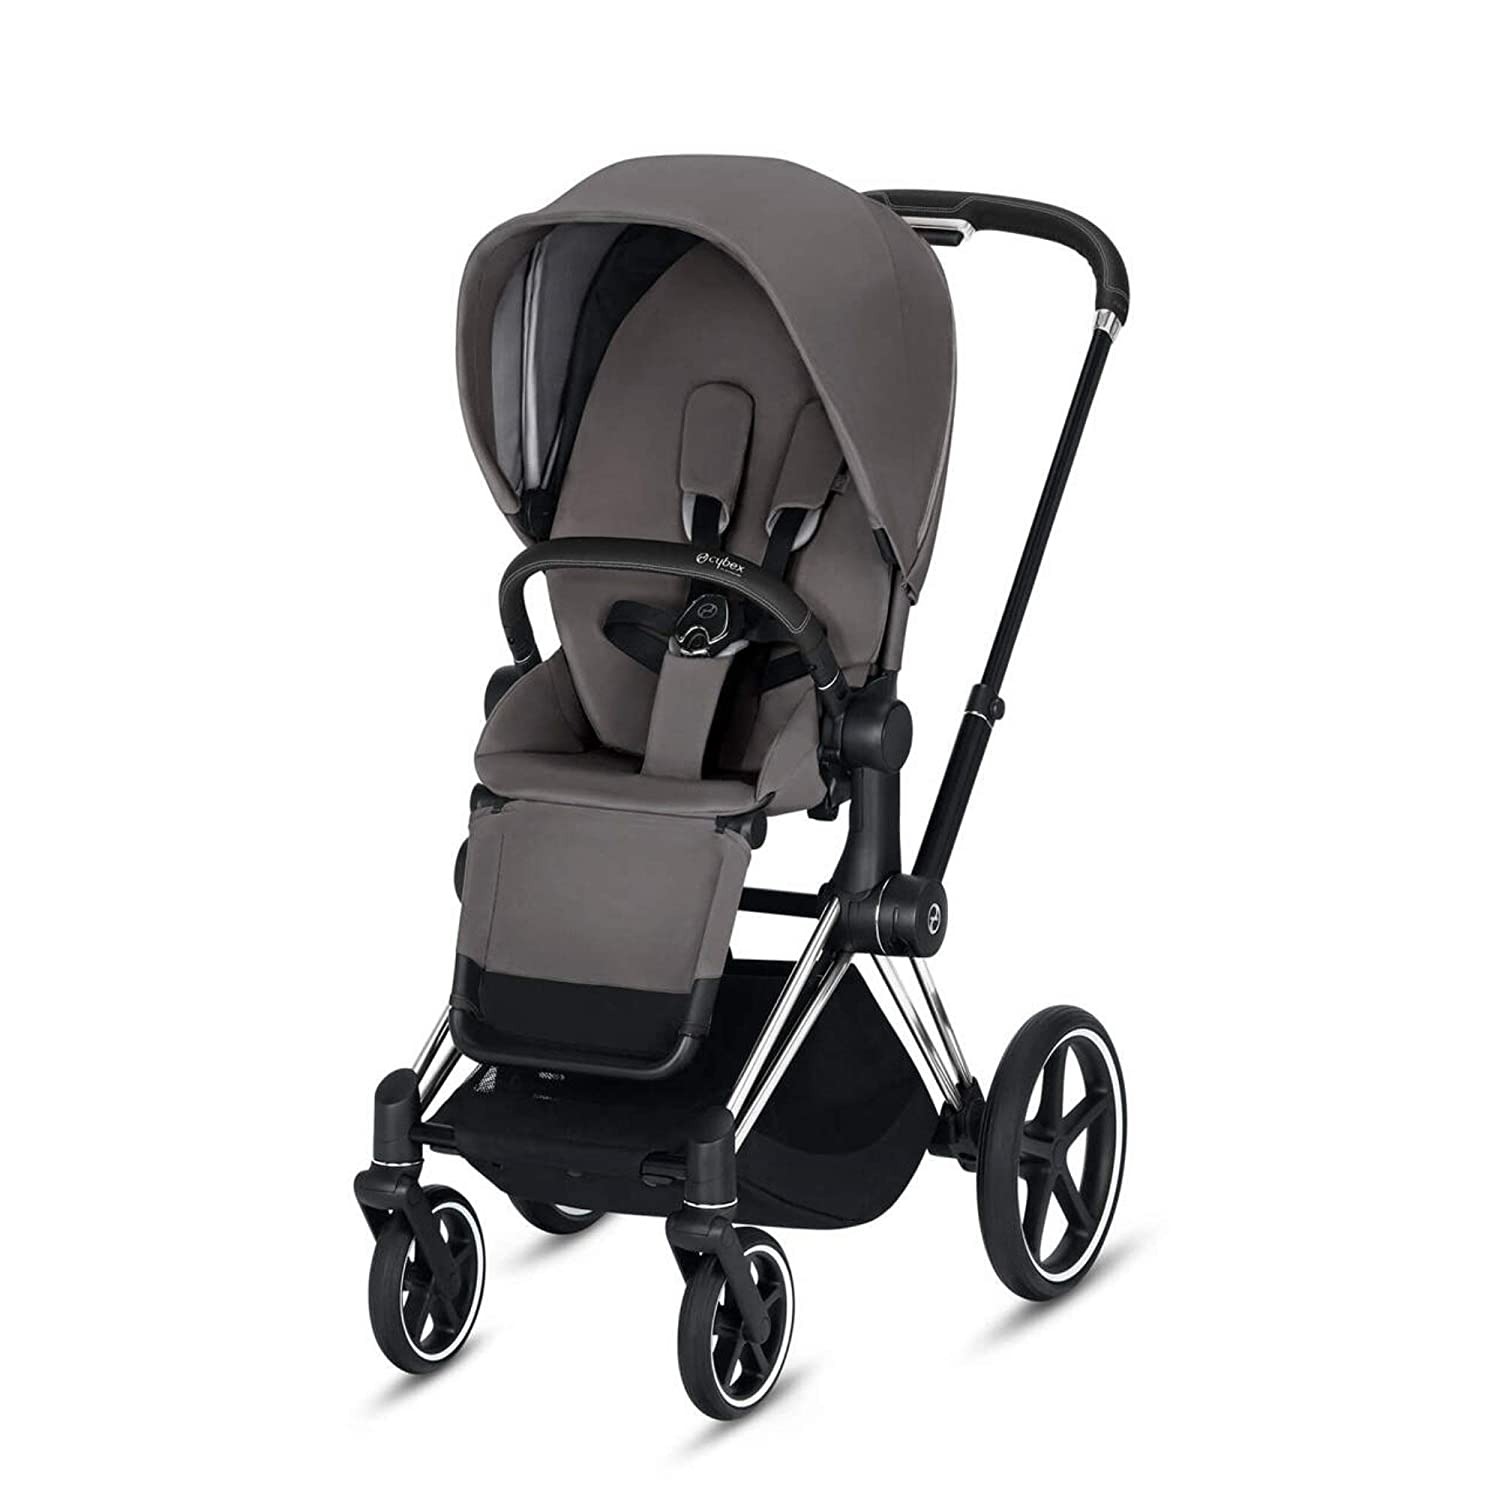 Cybex Priam 3 Complete Stroller, One-Hand Compact Fold, Reversible Seat, Smooth Ride All-Wheel Suspension, Extra Storage, Adjustable Leg Rest, Manhattan Grey with Chrome/Black Frame